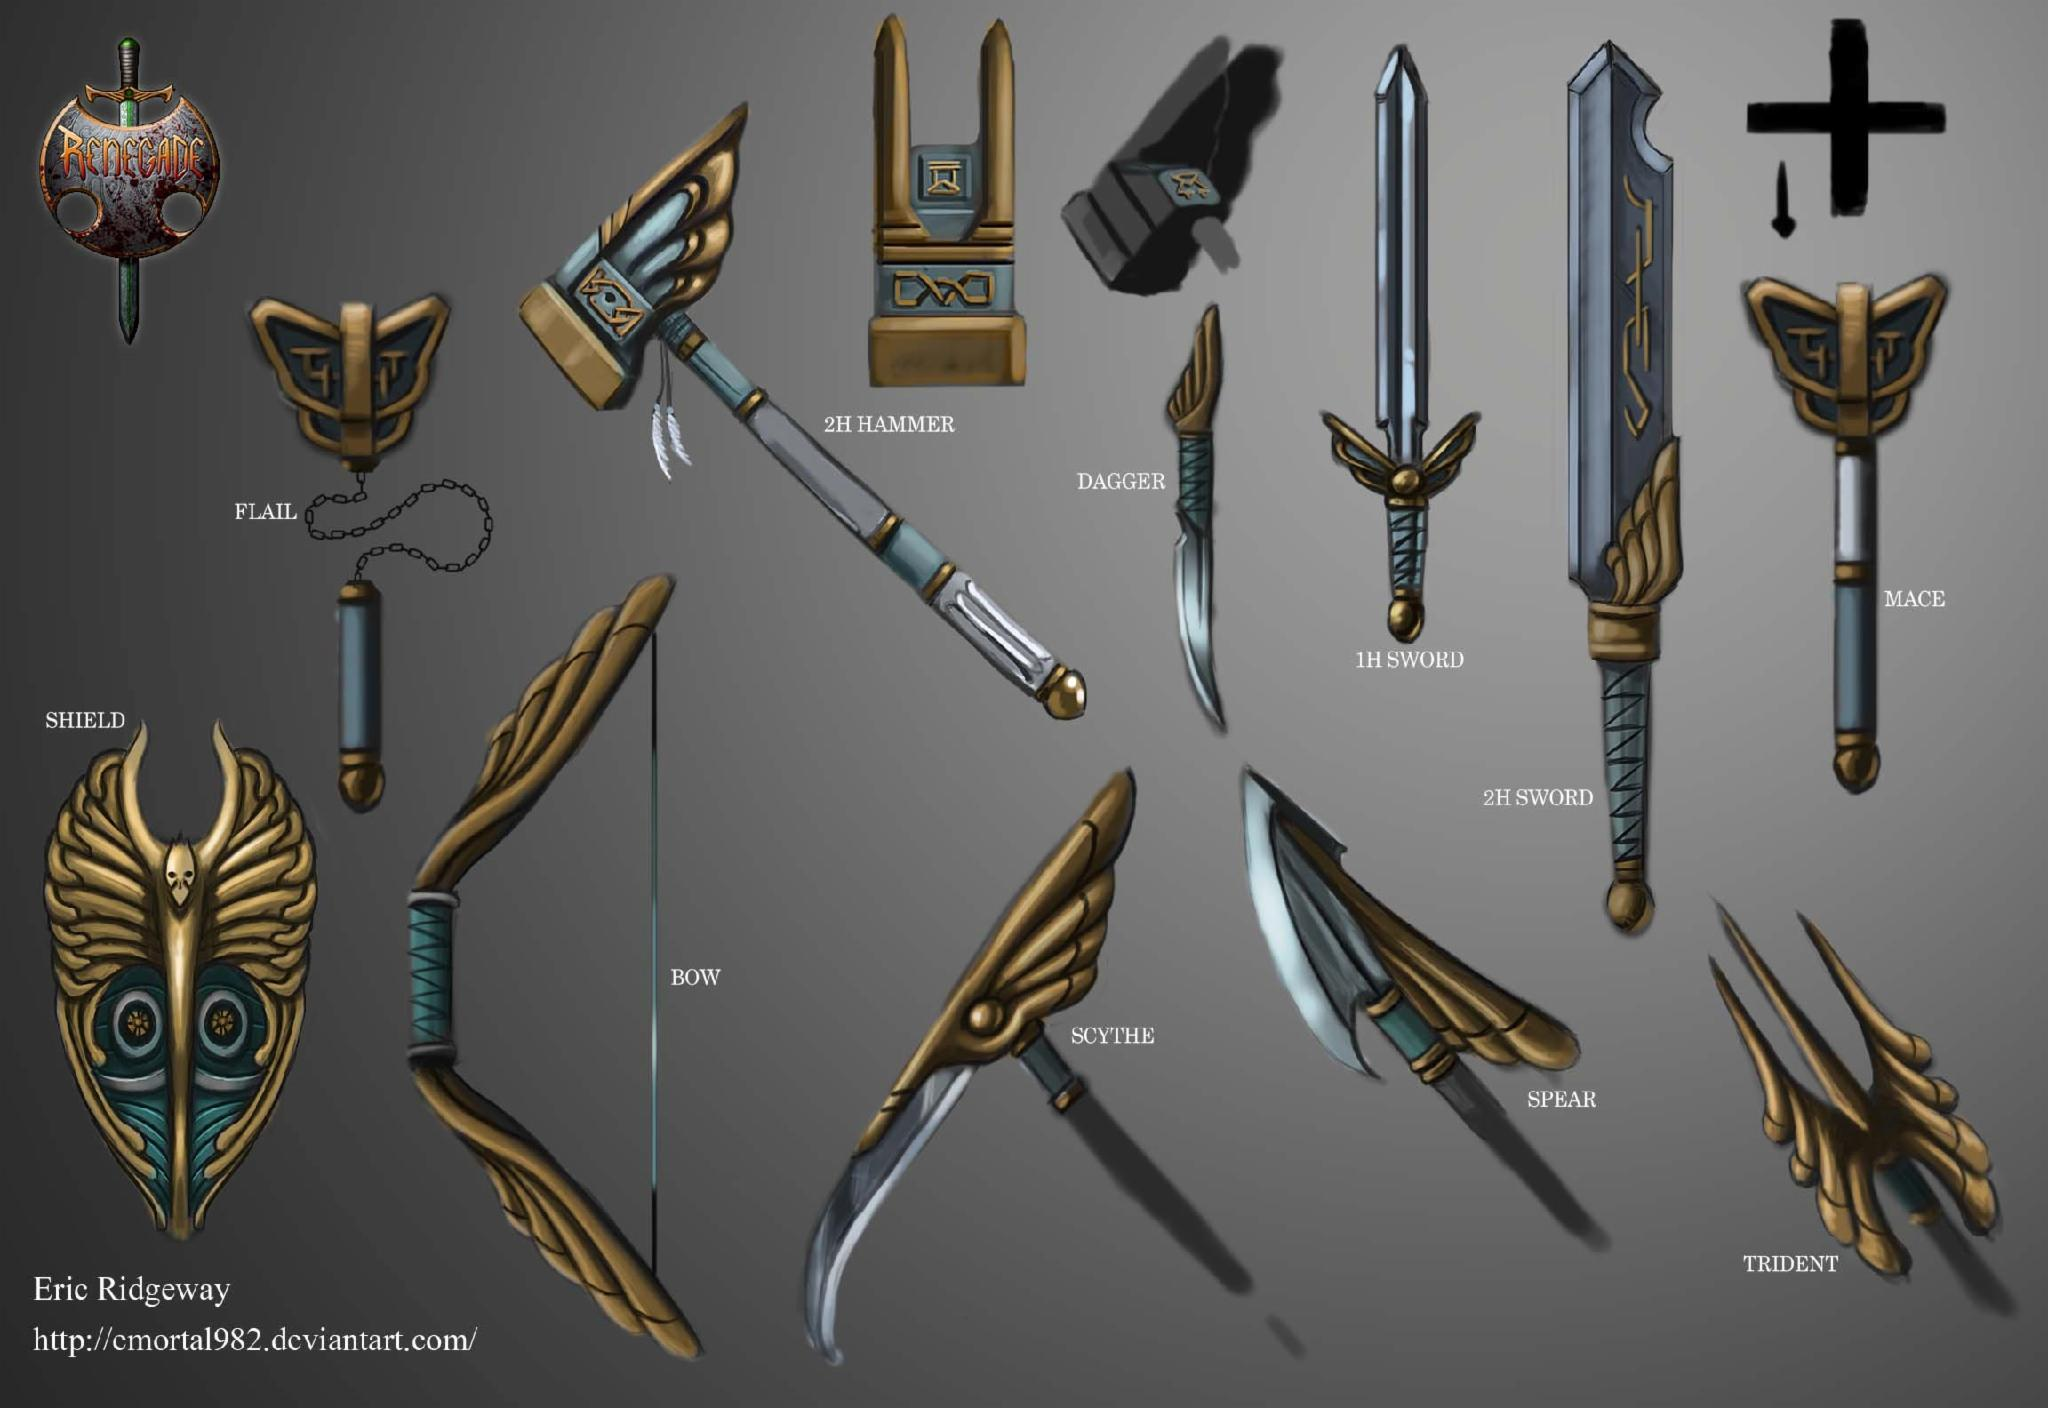 Which is the best Medieval weapon?